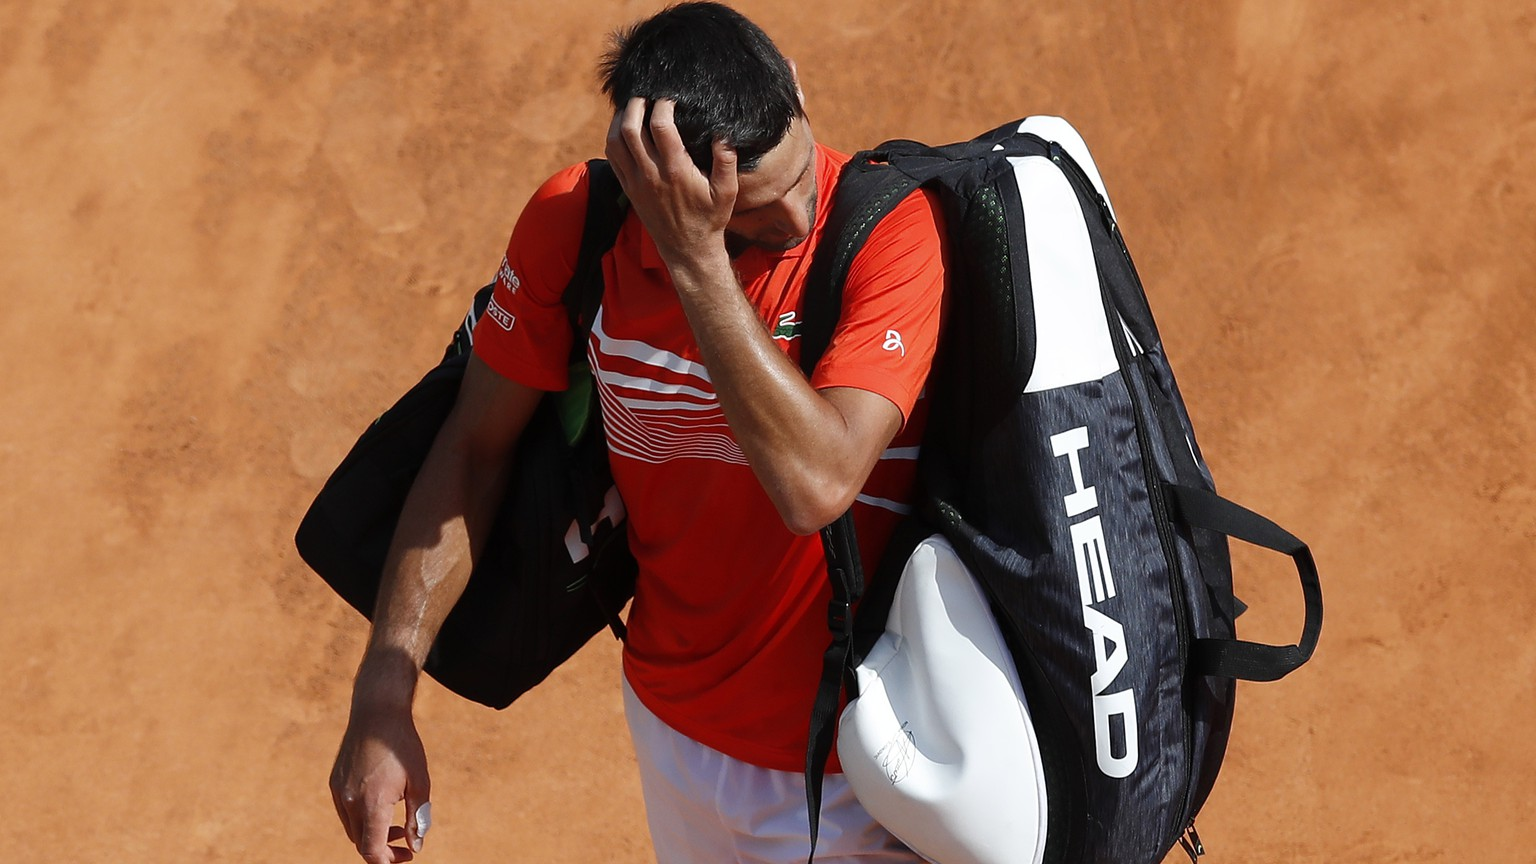 epa07515836 Novak Djokovic of Serbia leaves the court after losing his quarterfinal match against Daniil Medvedev of Russia at the Monte-Carlo Rolex Masters tournament in Roquebrune Cap Martin, France, 19 April 2019.  EPA/SEBASTIEN NOGIER